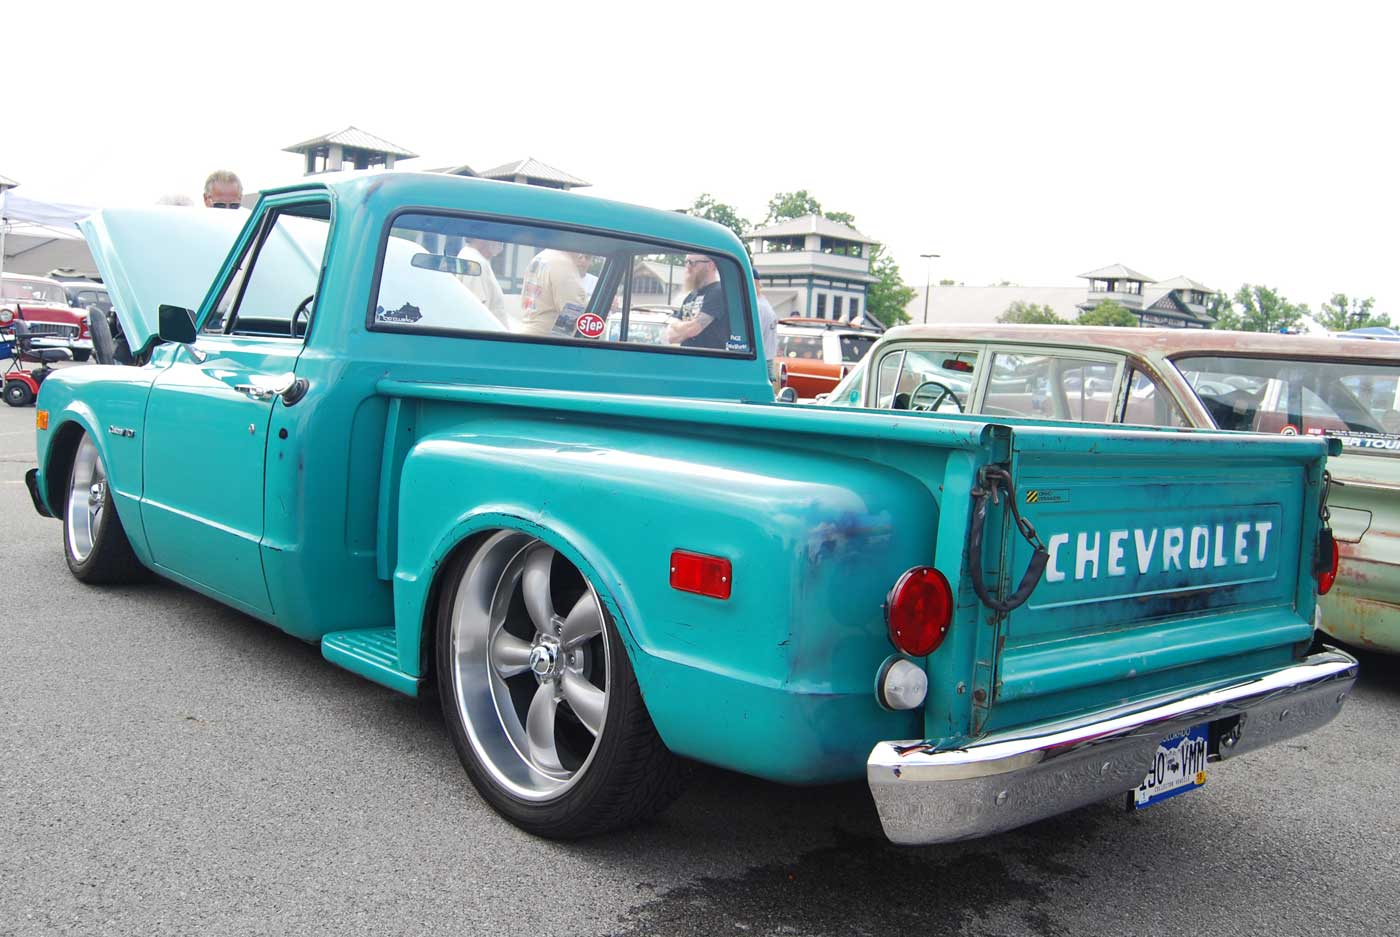 Patinad 1971 Chevy In Mo Fun Green 1955 Ford F100 Step Bed 71 Short